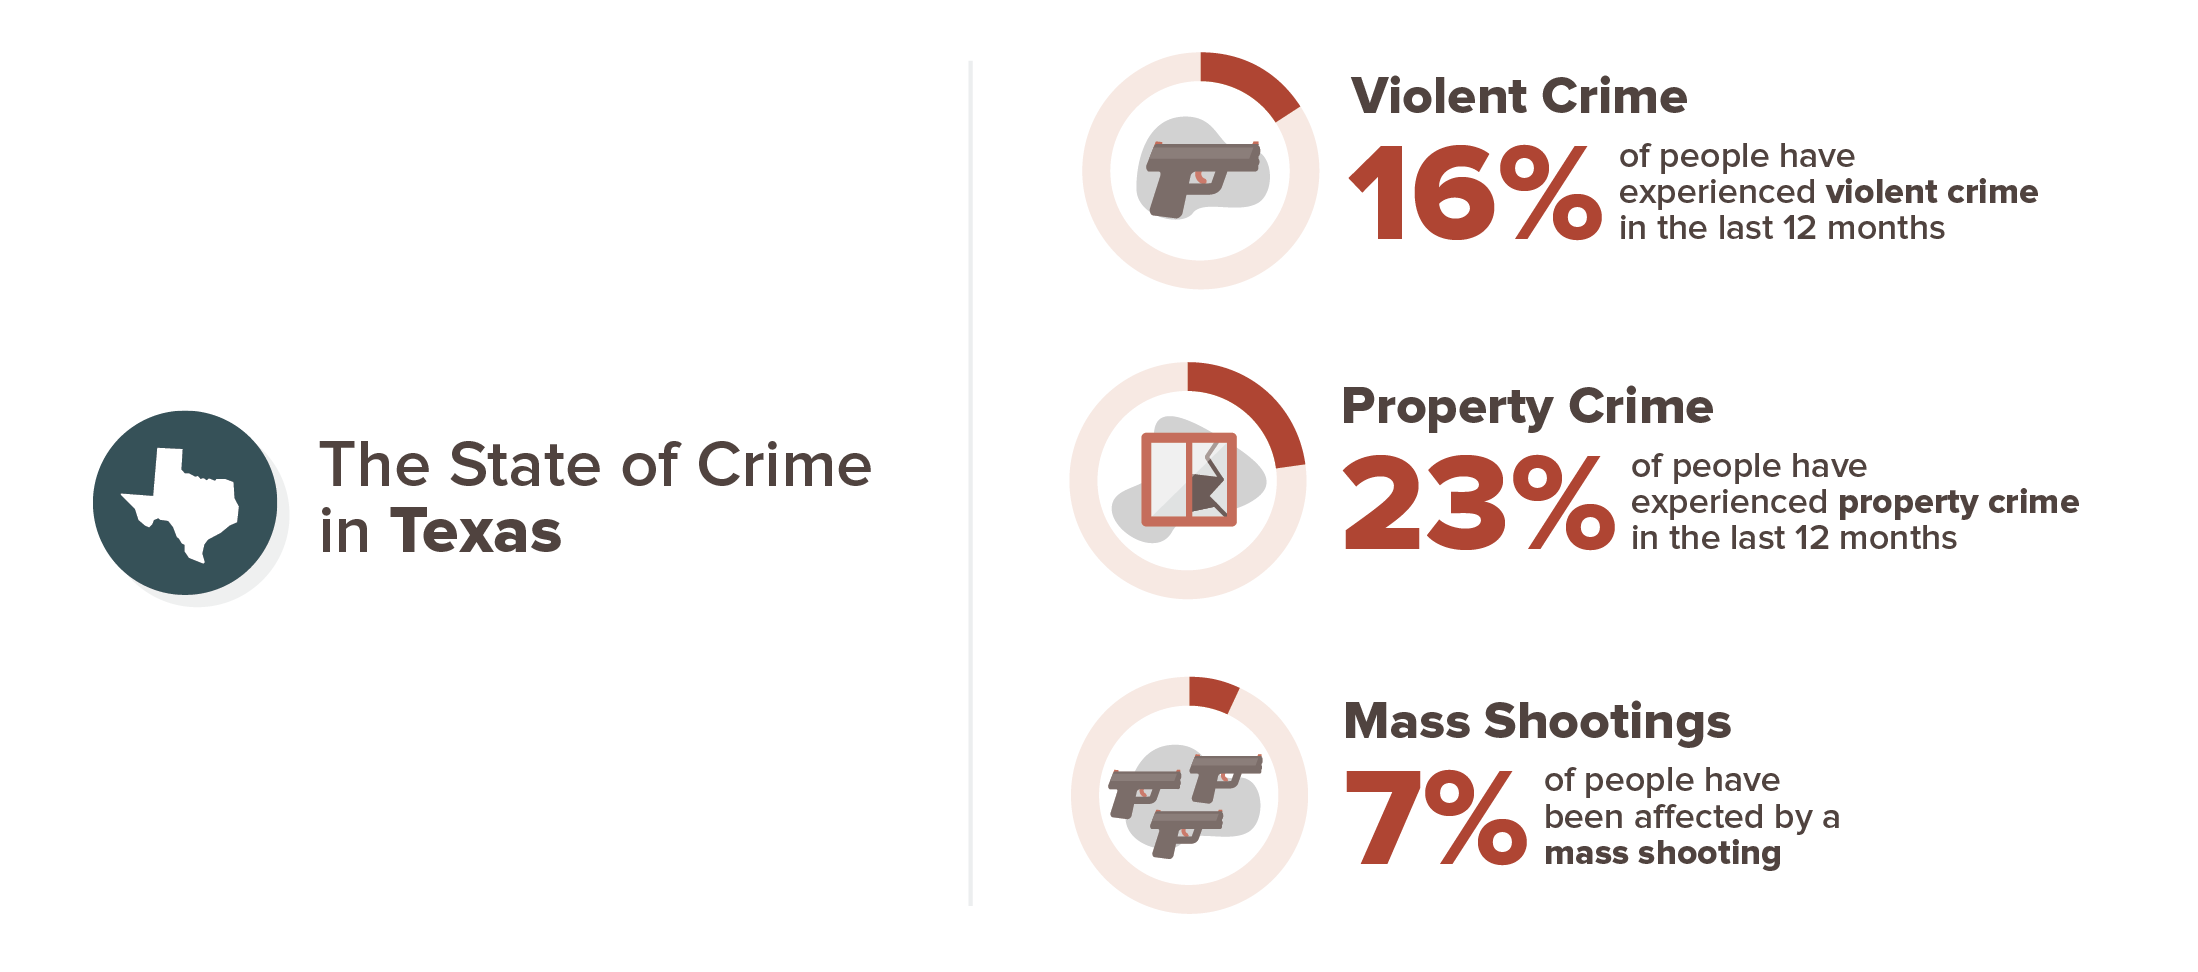 Texas crime experience infographic